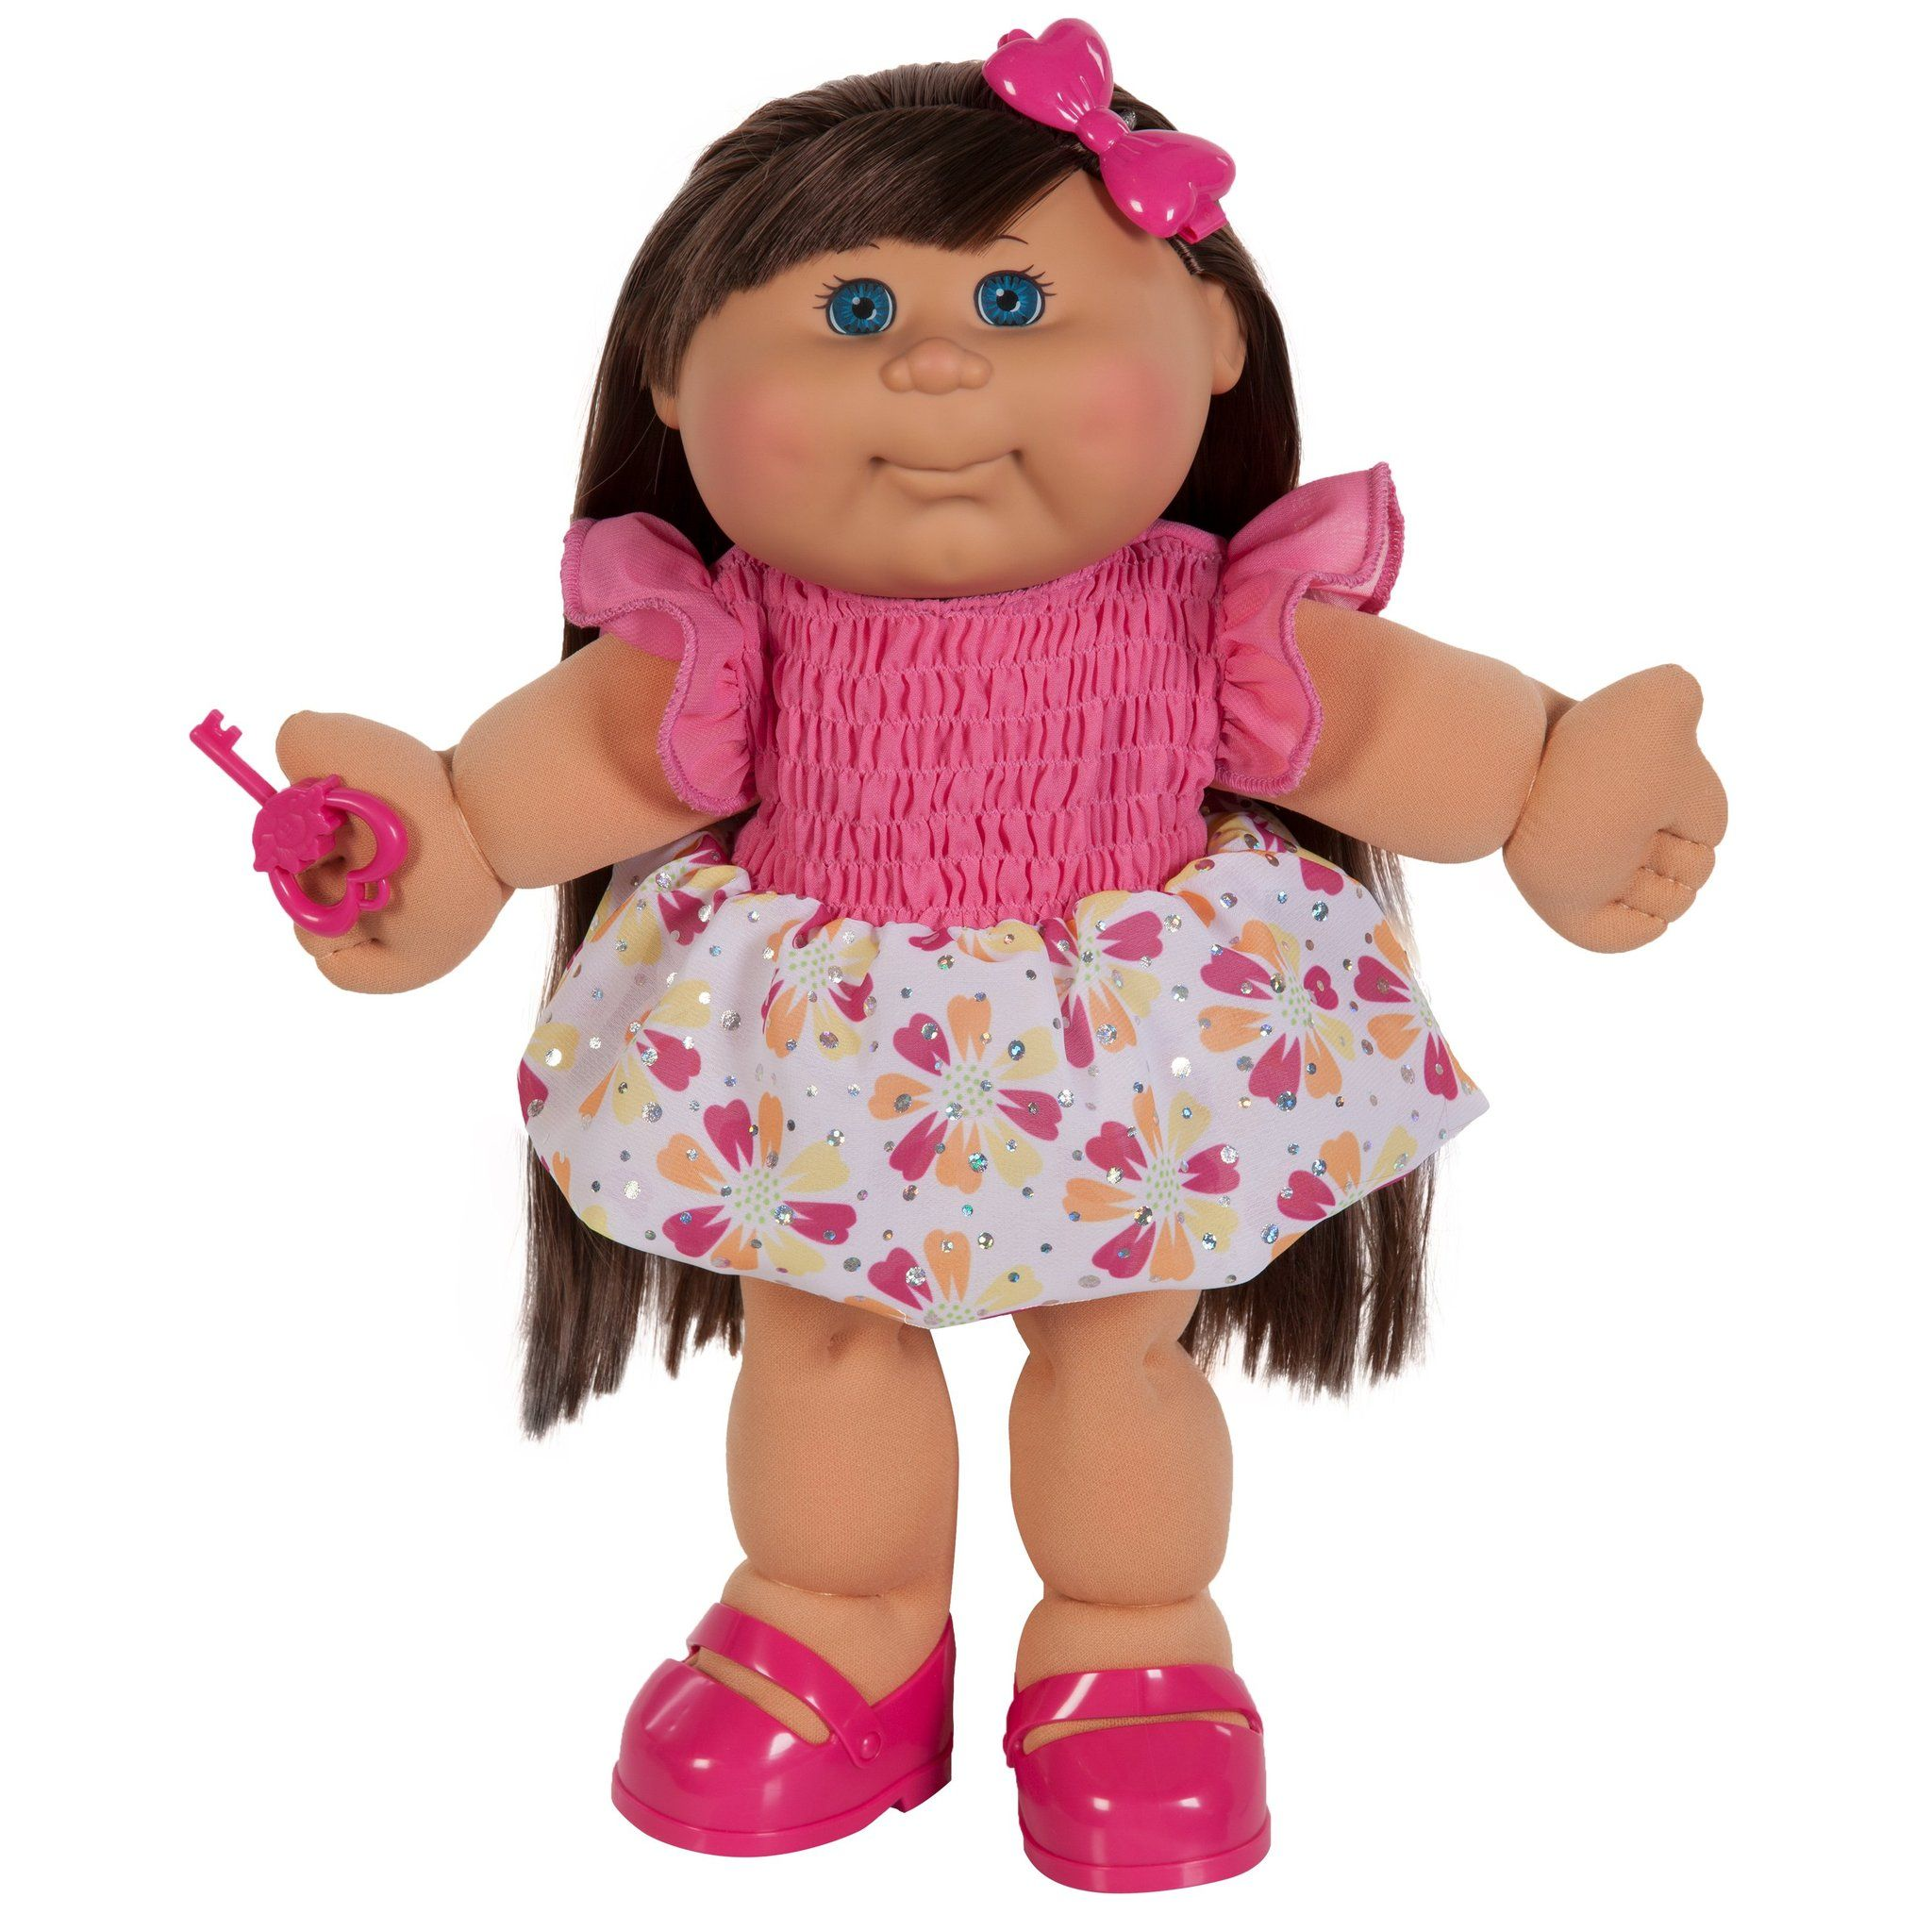 Ruched Girl 14 Inch Cabbage Patch Kids In 2020 Patch Kids Cabbage Patch Dolls Cabbage Patch Kids